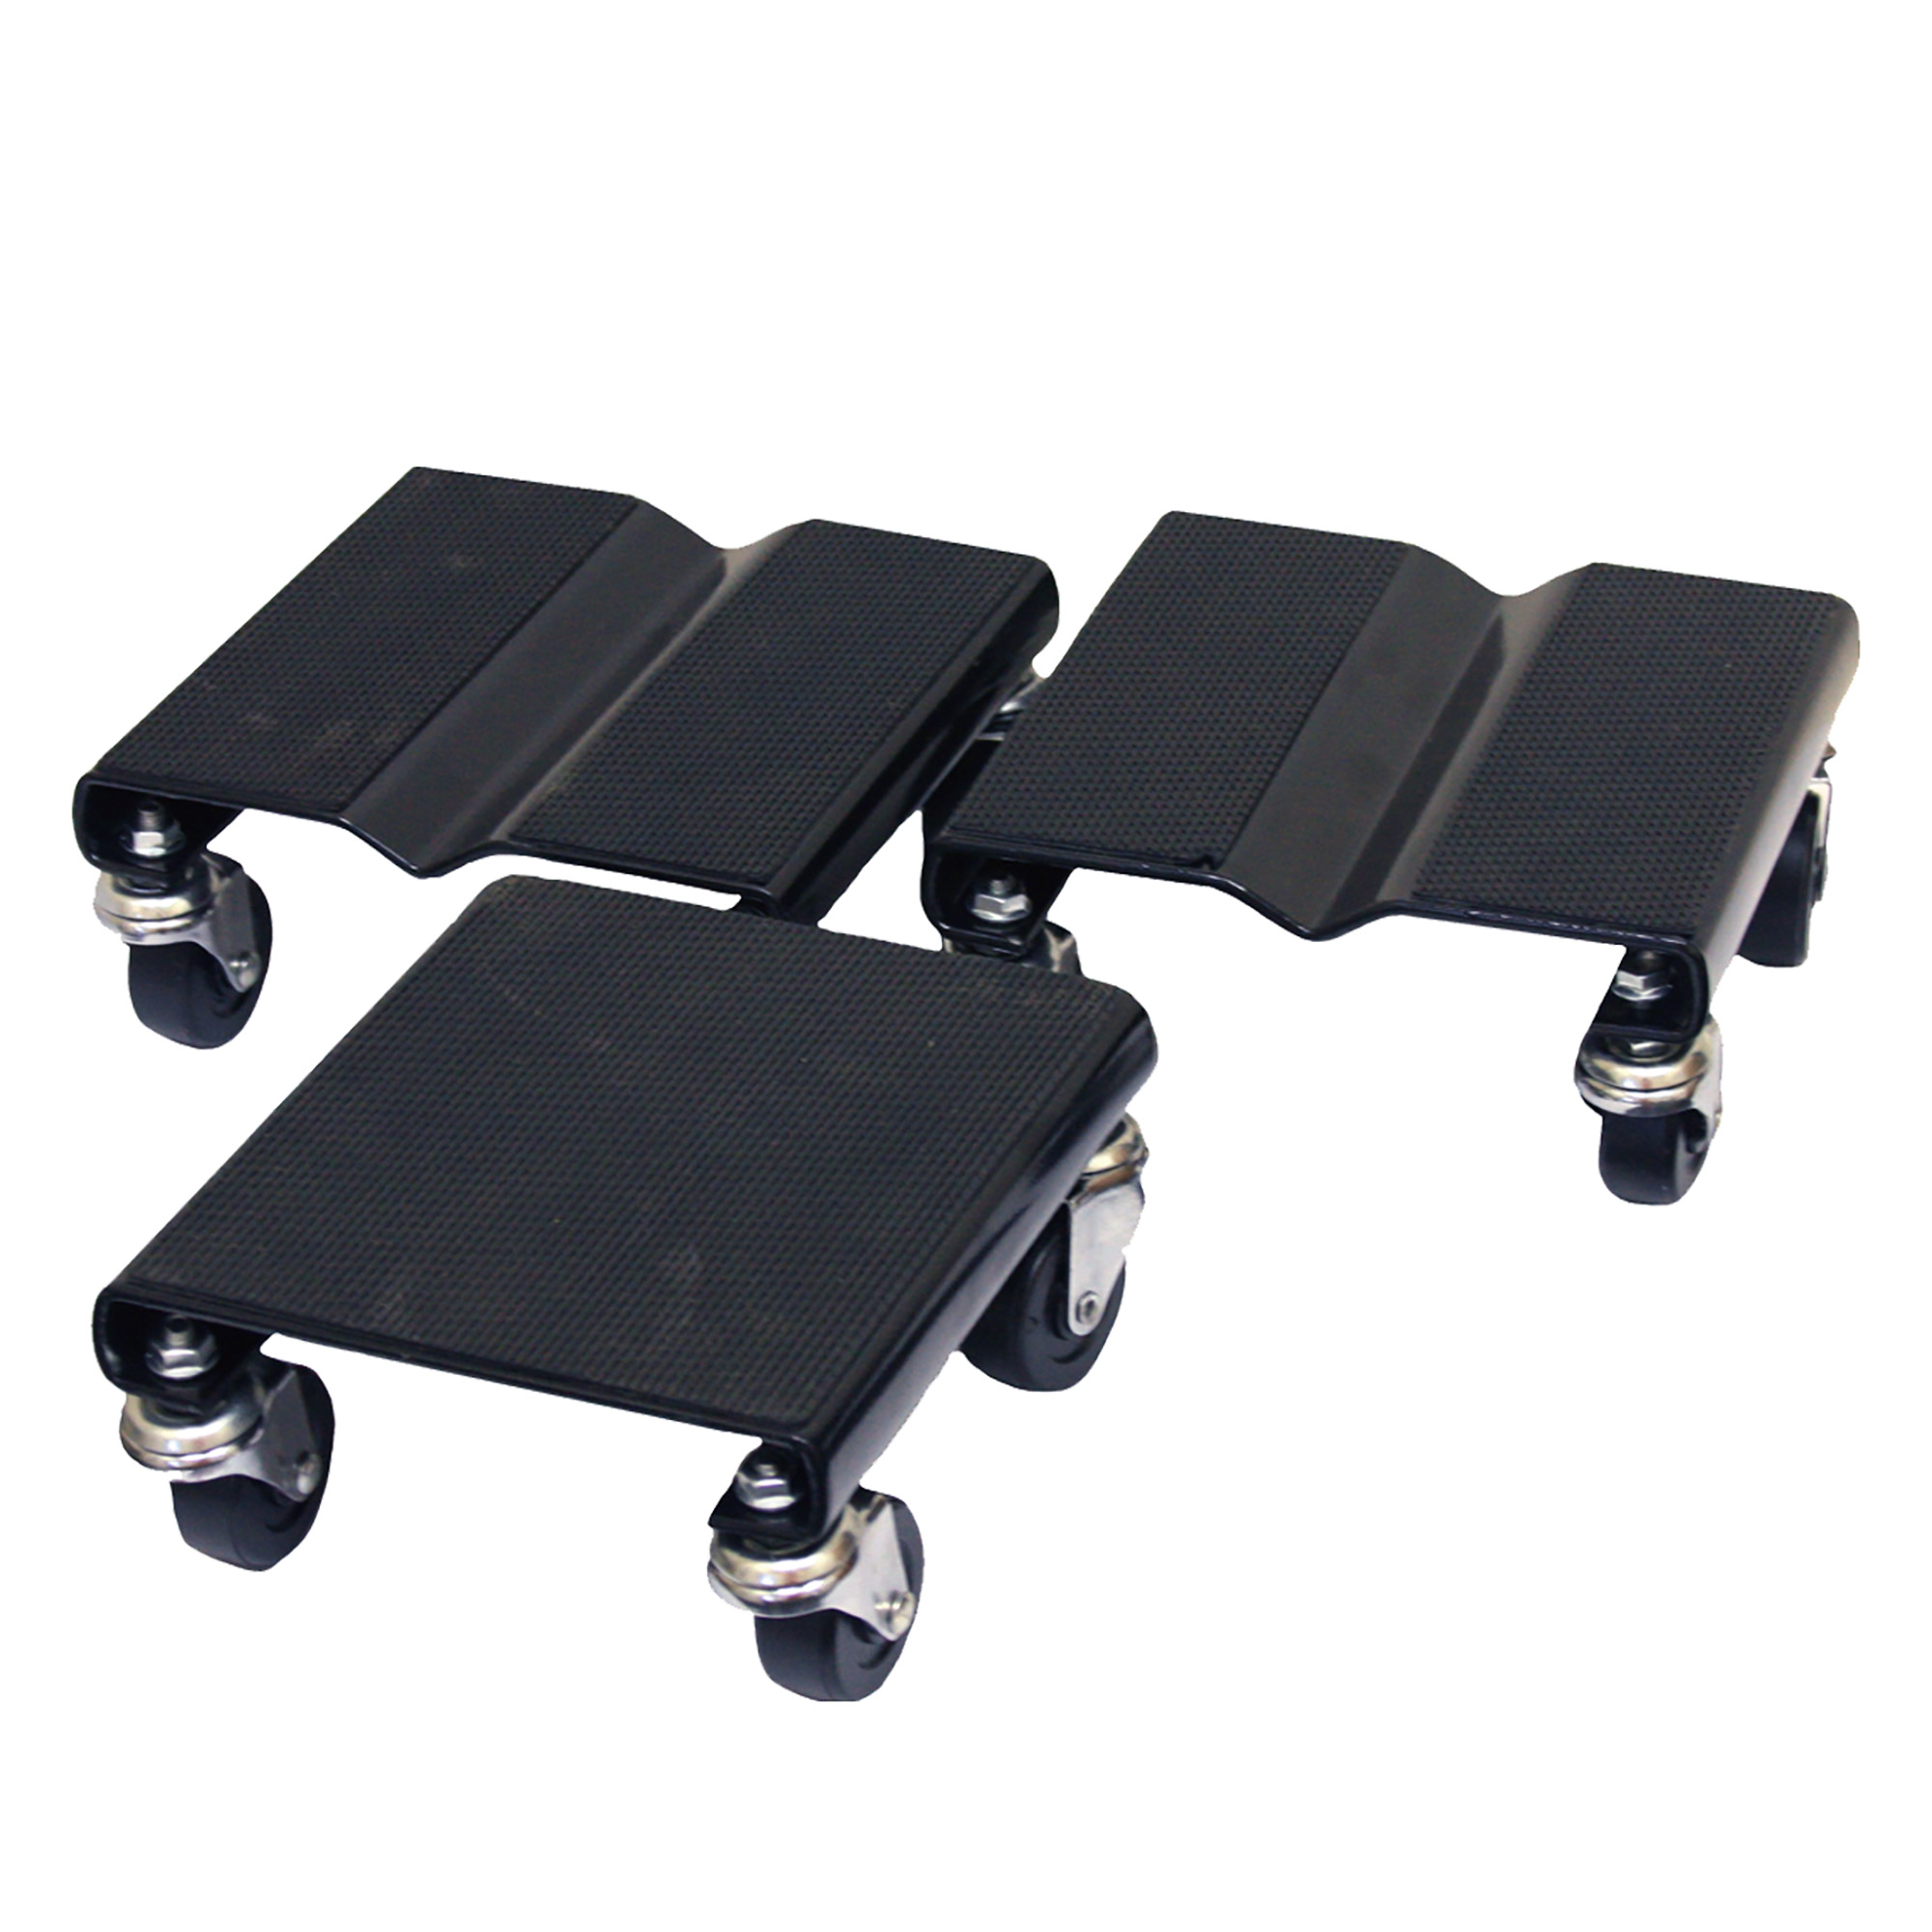 Steel Core 3 piece 1,500 lb Capacity Snowmobile Dolly Set